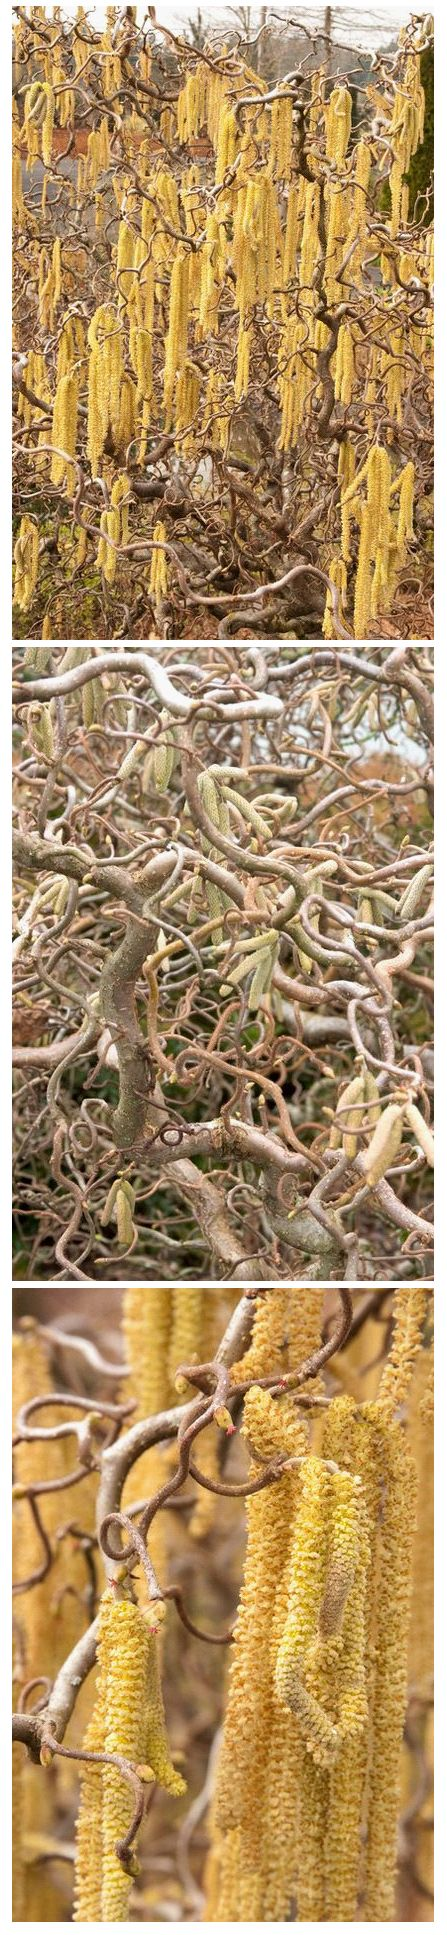 Harry lauder walking stick trees - Harry Lauder S Walking Stick Corylus Avellana Contorta The Twisted Form Of